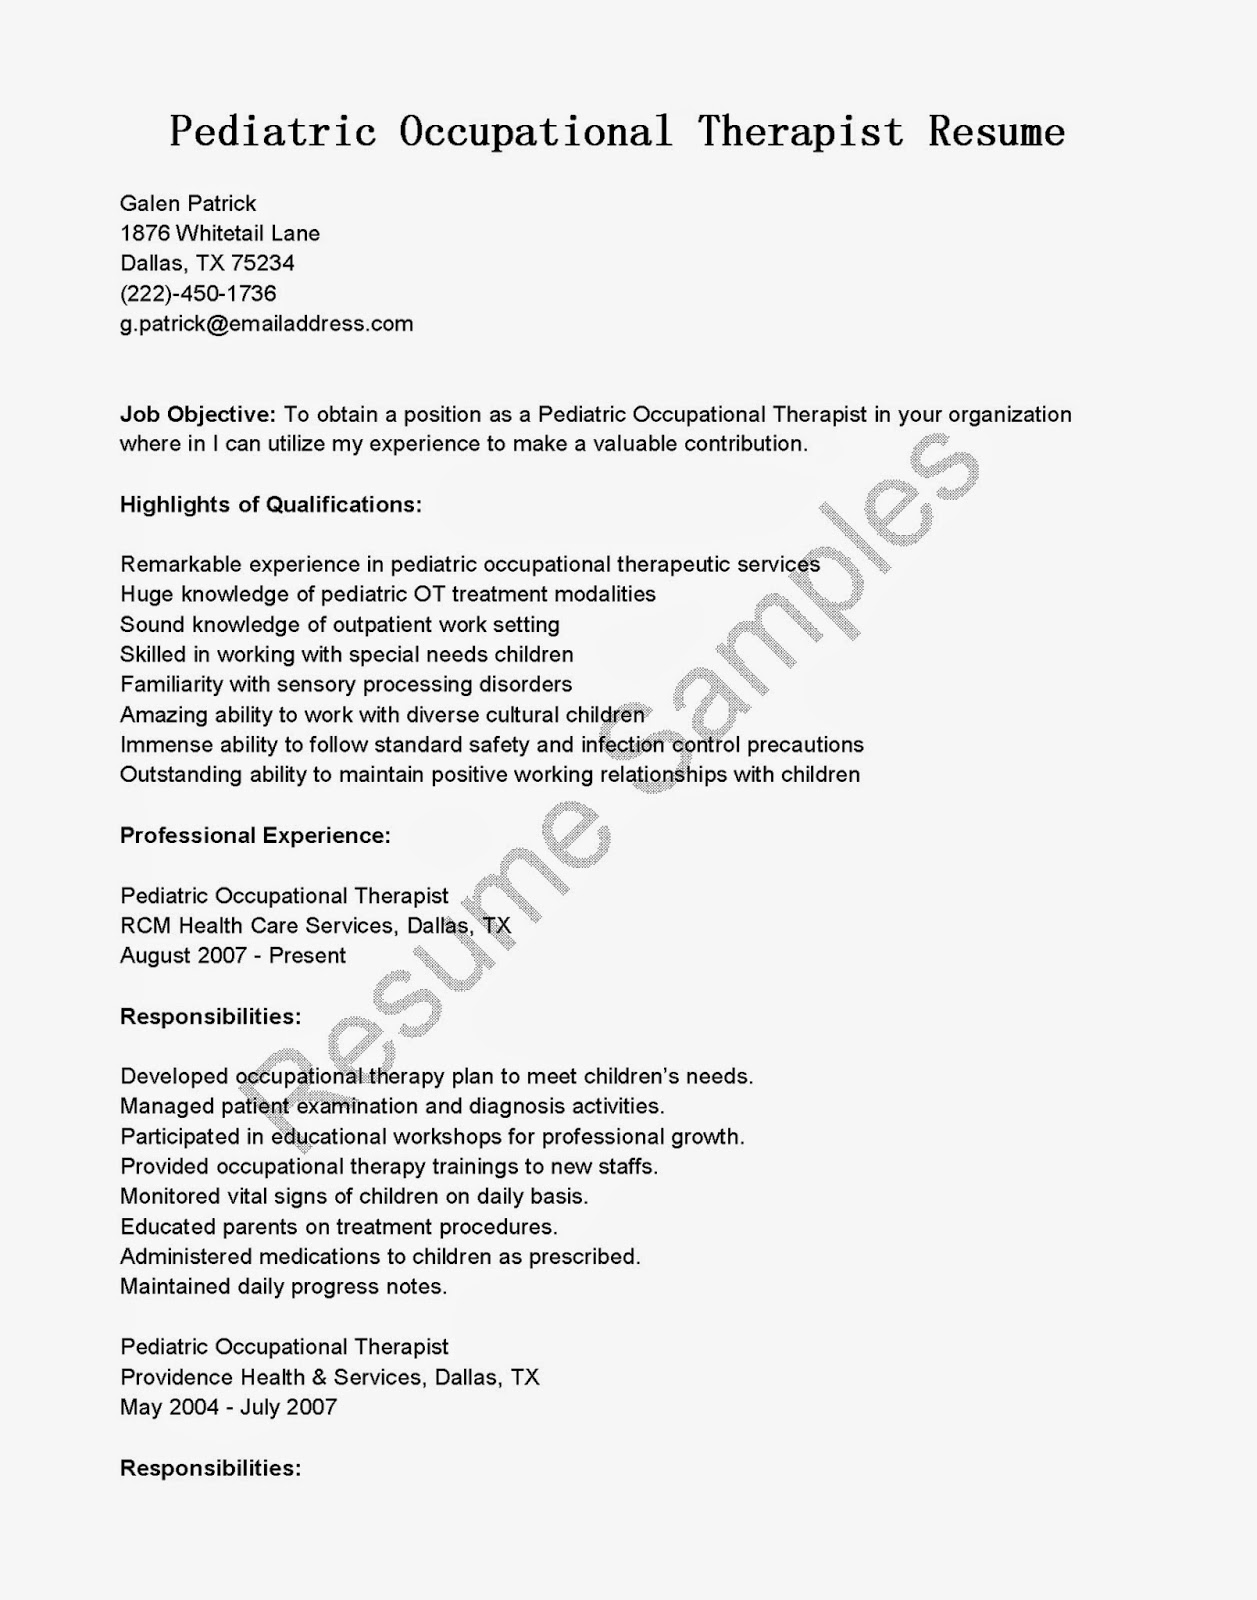 Occupational Therapy Resume Template Resume Samples Pediatric Occupational Therapist Resume